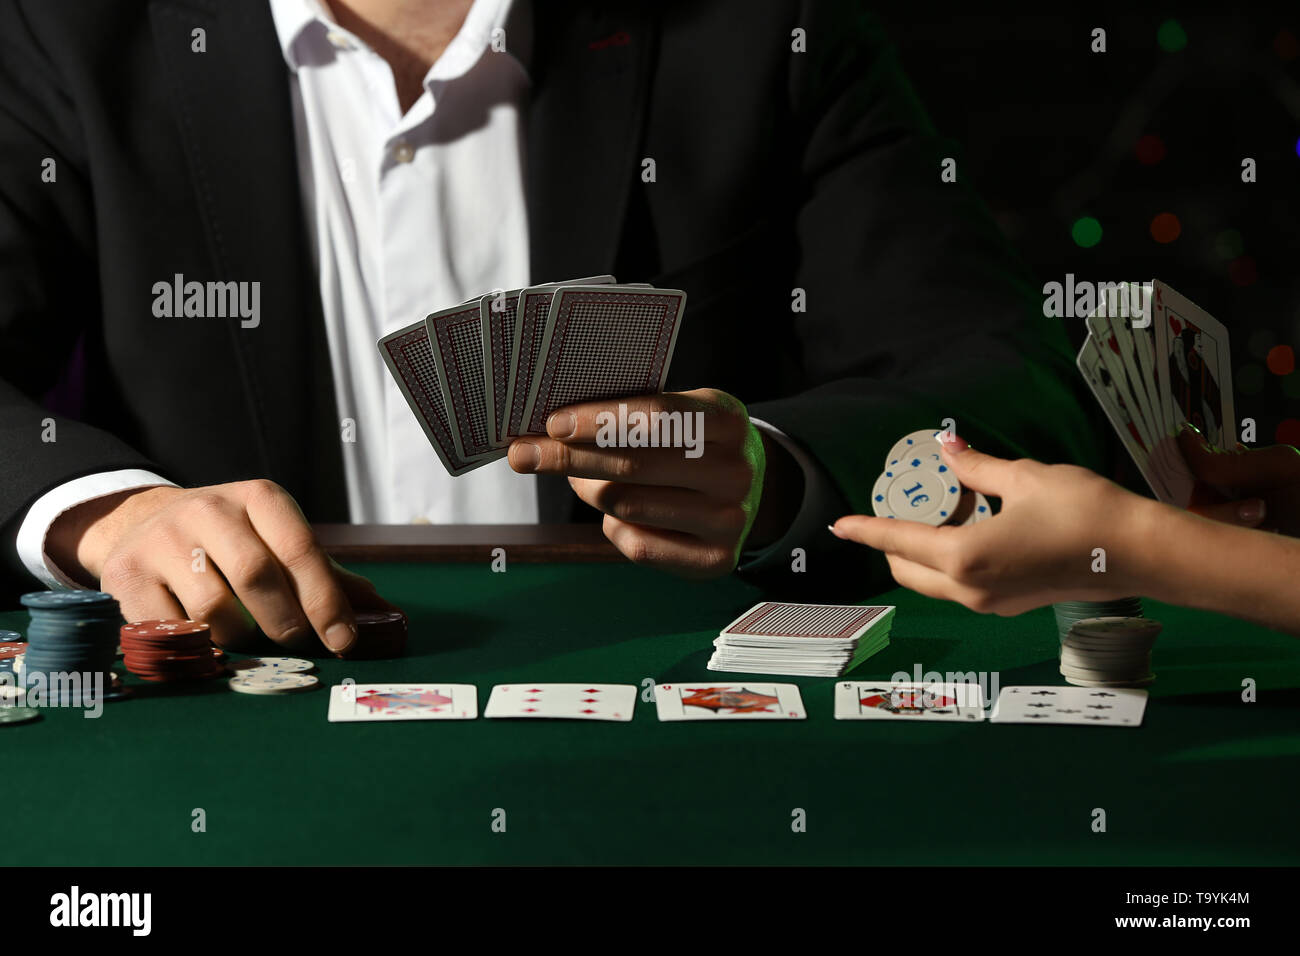 Players at table in casino - Stock Image